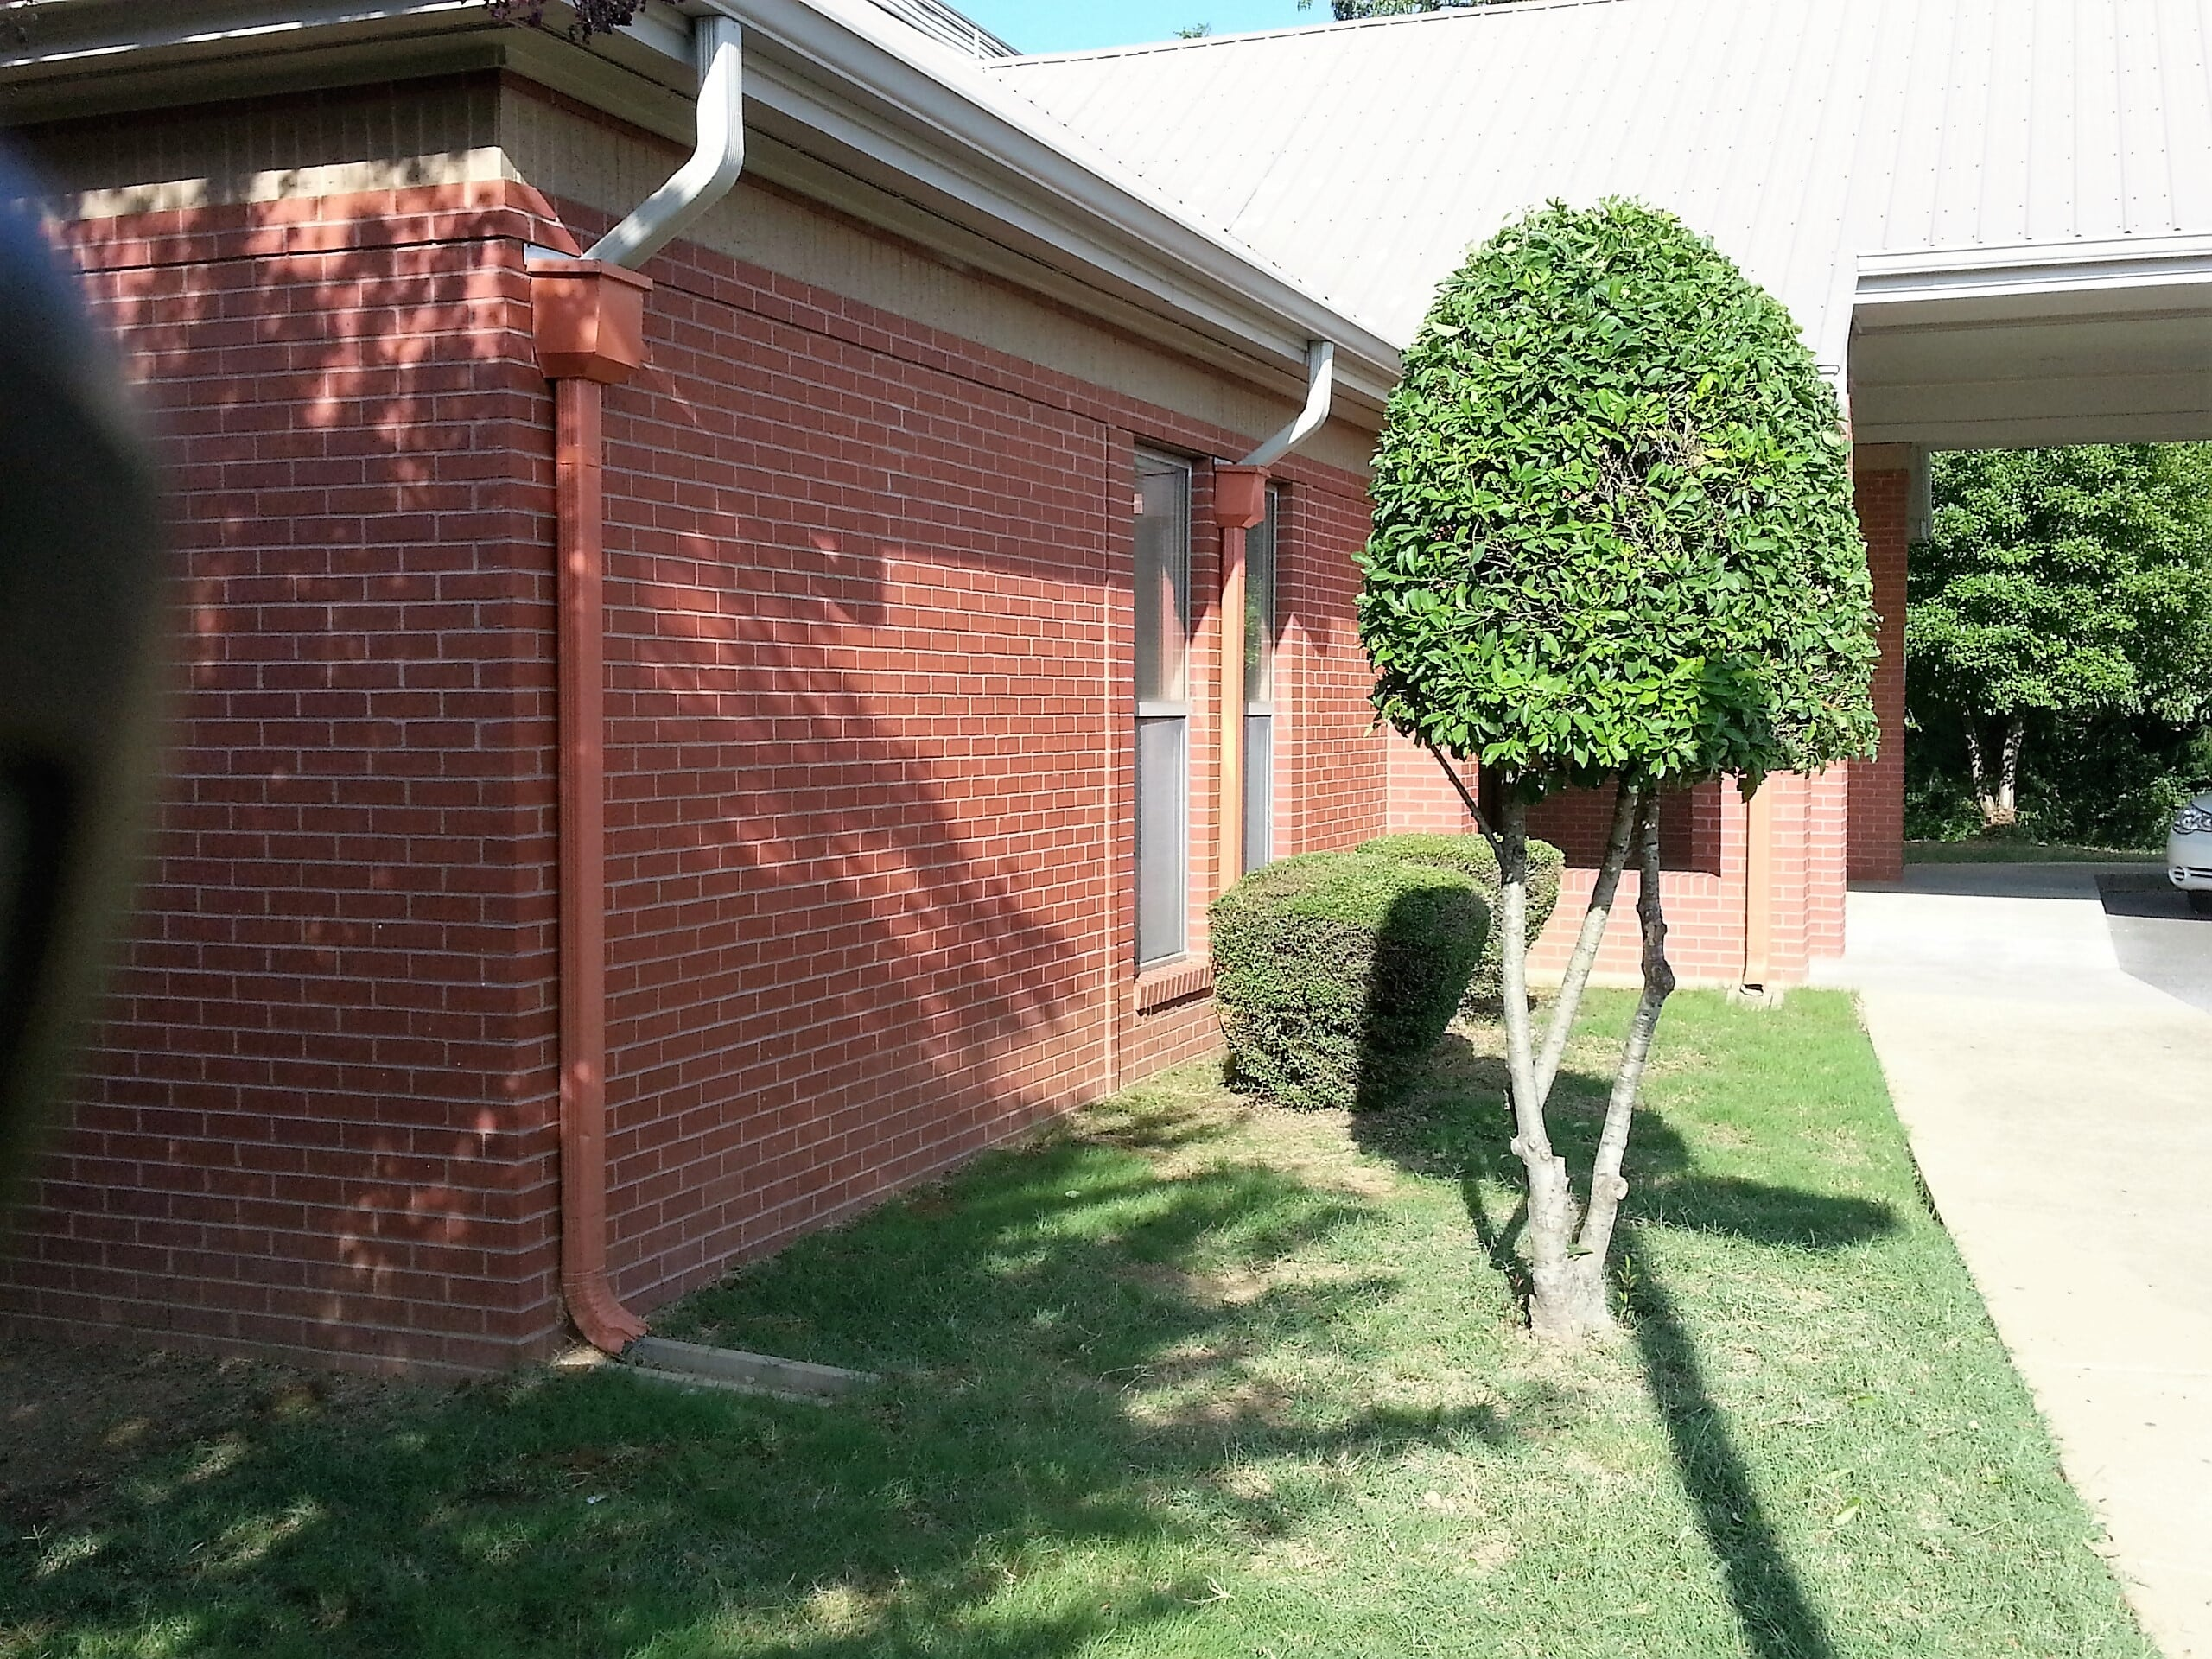 Trinity lawn care of memphis memphis tennessee tn for Garden trees memphis